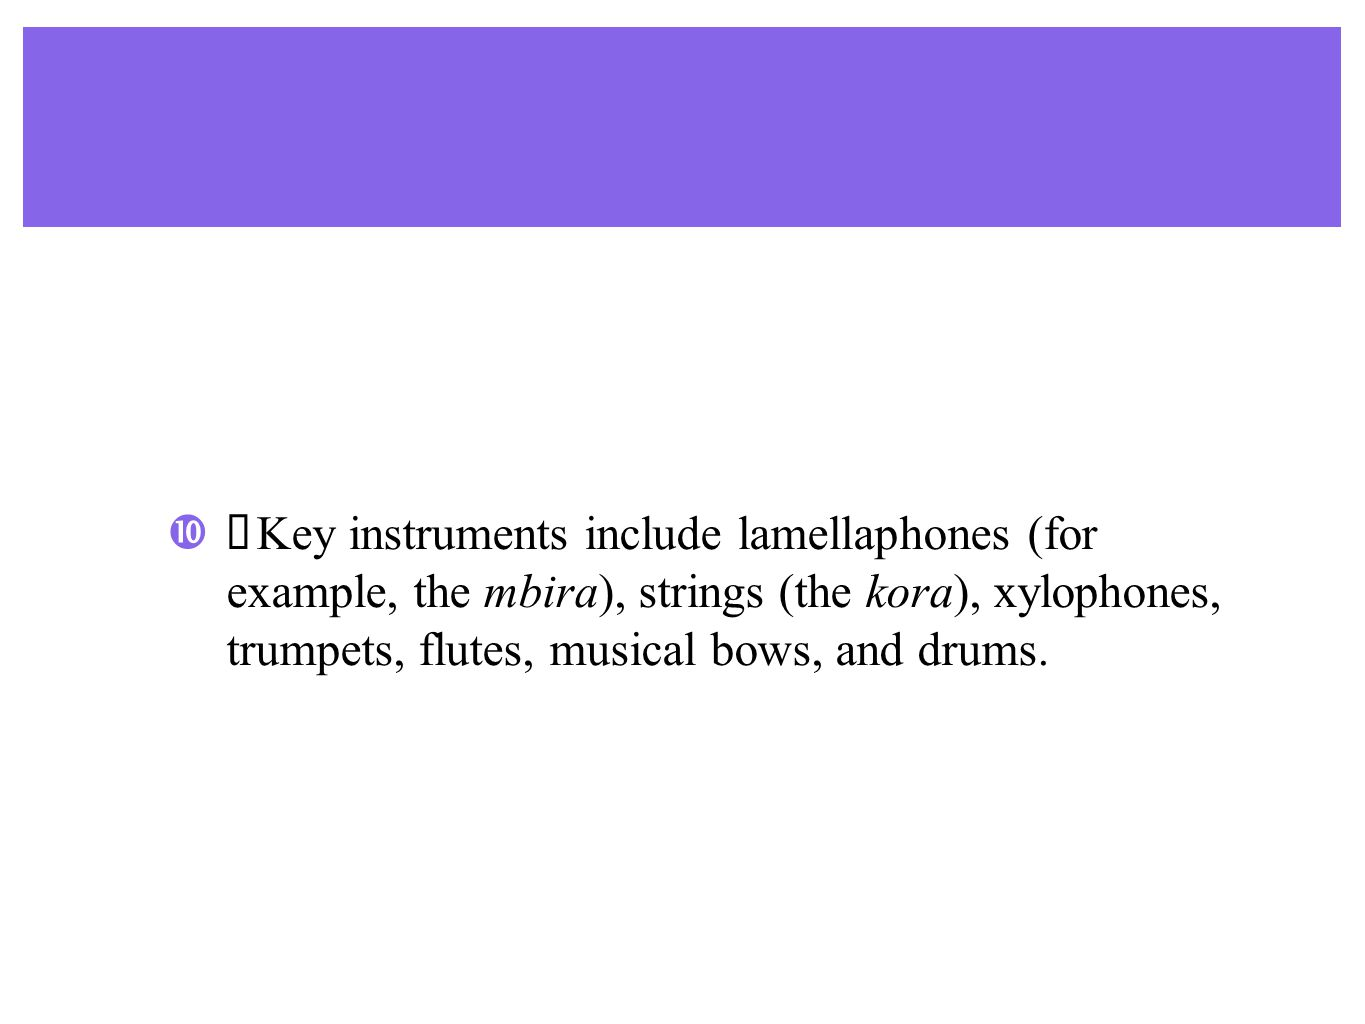  Key instruments include lamellaphones (for example, the mbira), strings (the kora), xylophones, trumpets, flutes, musical bows, and drums.